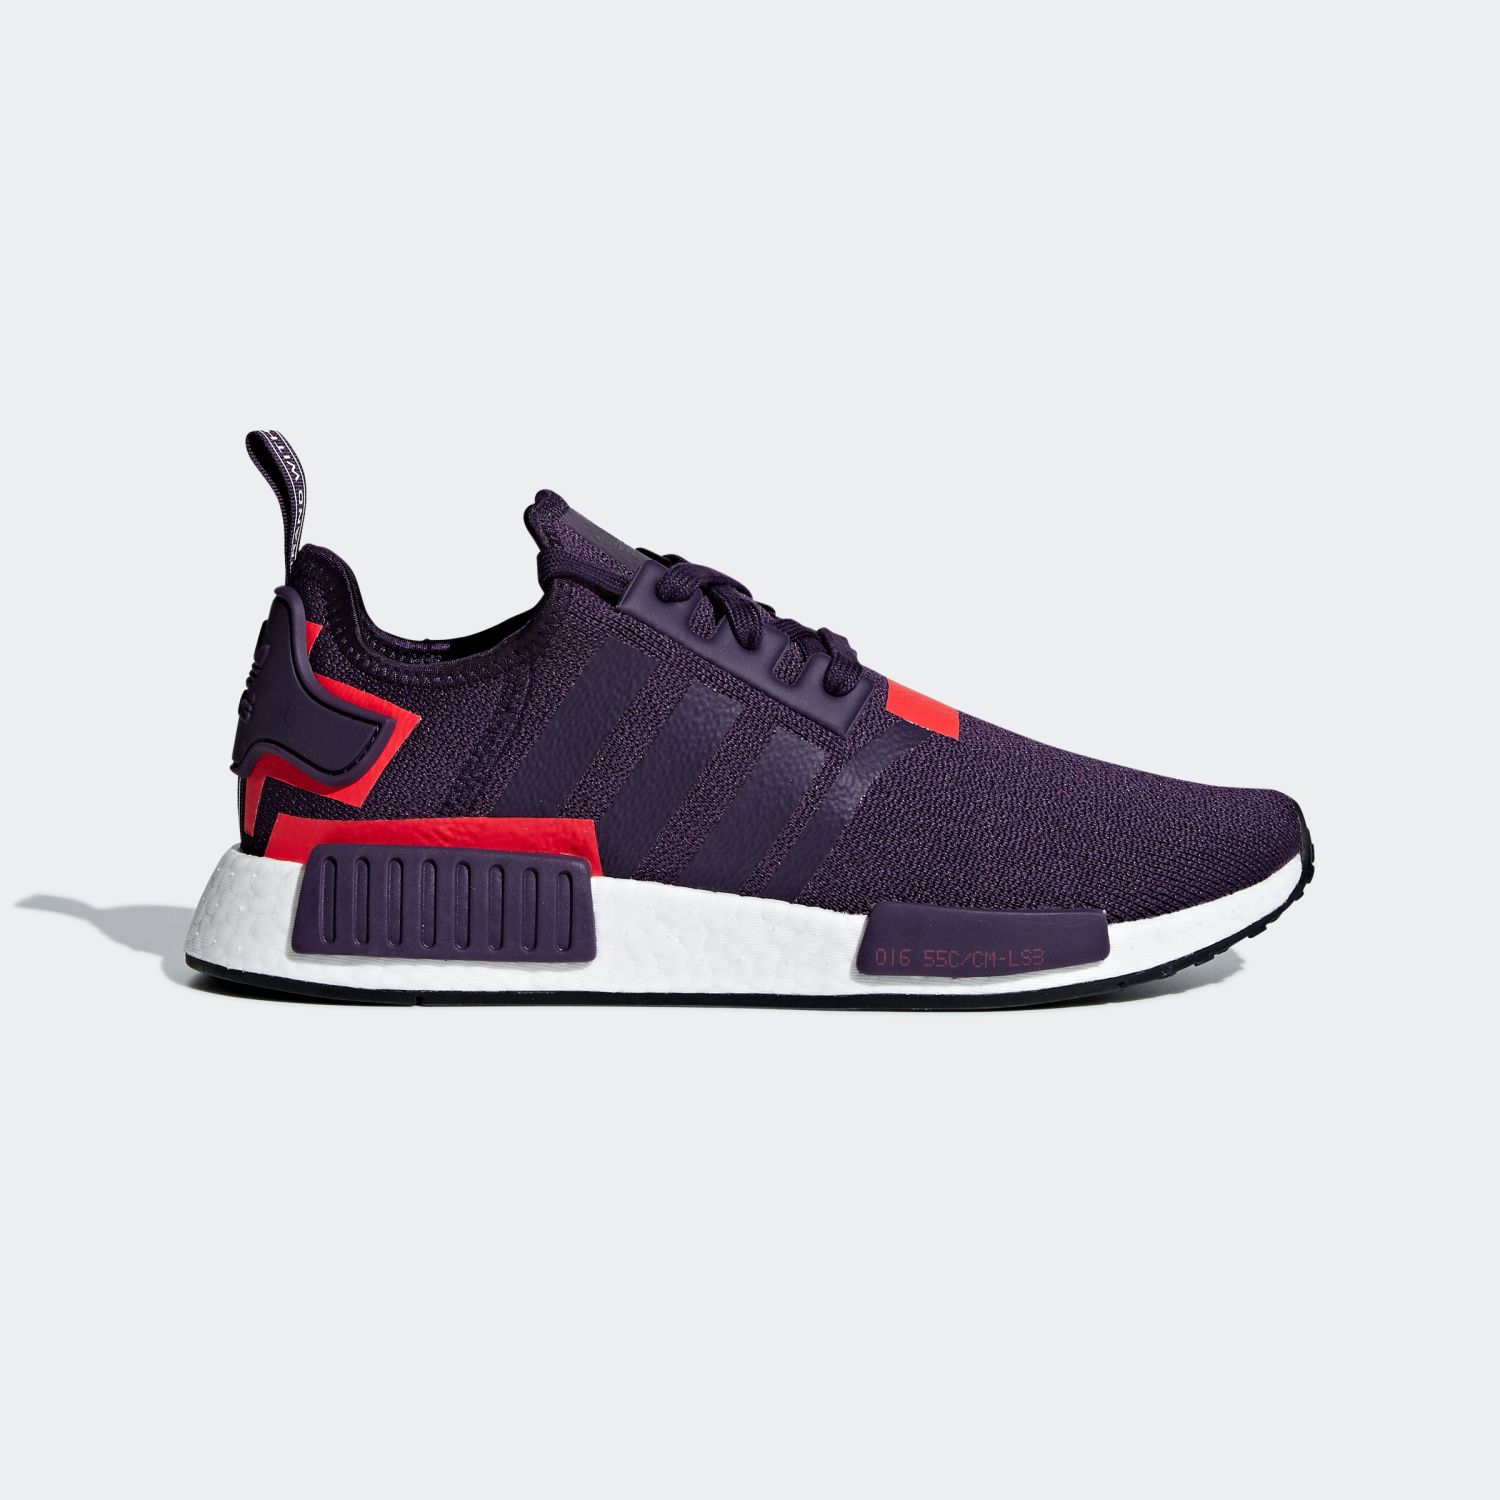 NMD R1 Legend Purple Shock Red